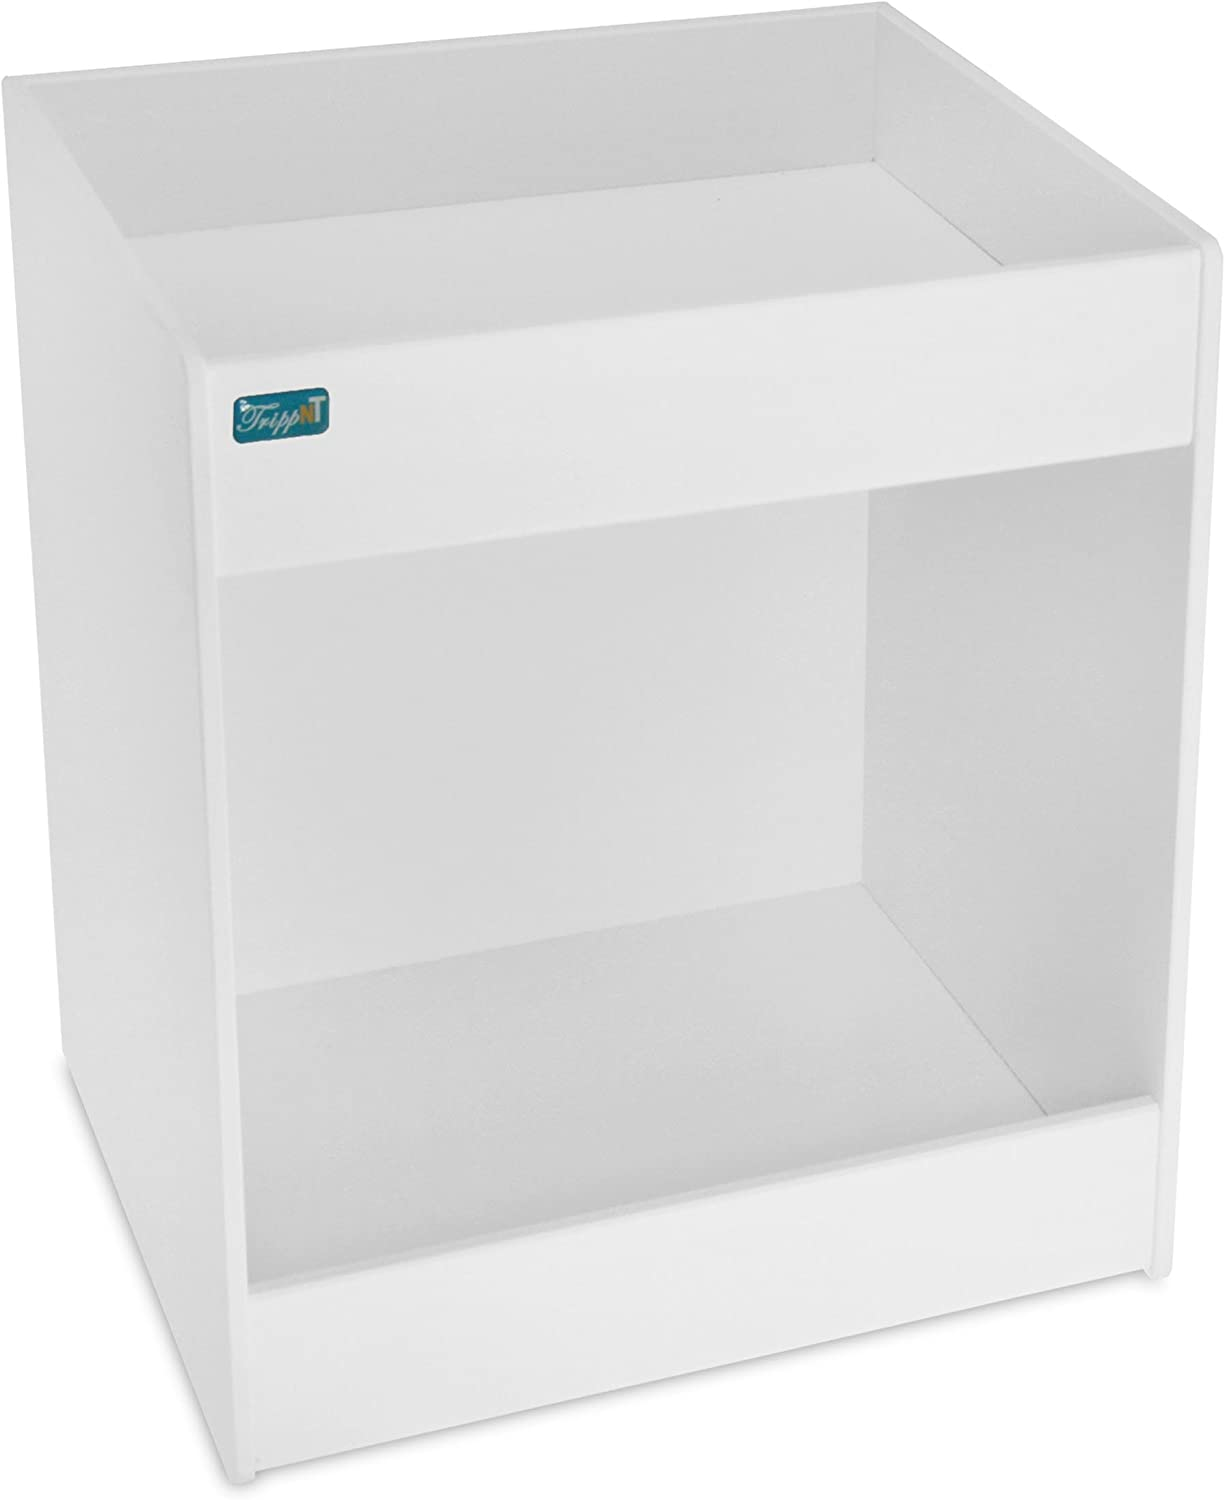 TrippNT 50155 PVC Angled Double Safety Shelves, 12-Inch Width x 16-Inch Height x 9-Inch Depth, White